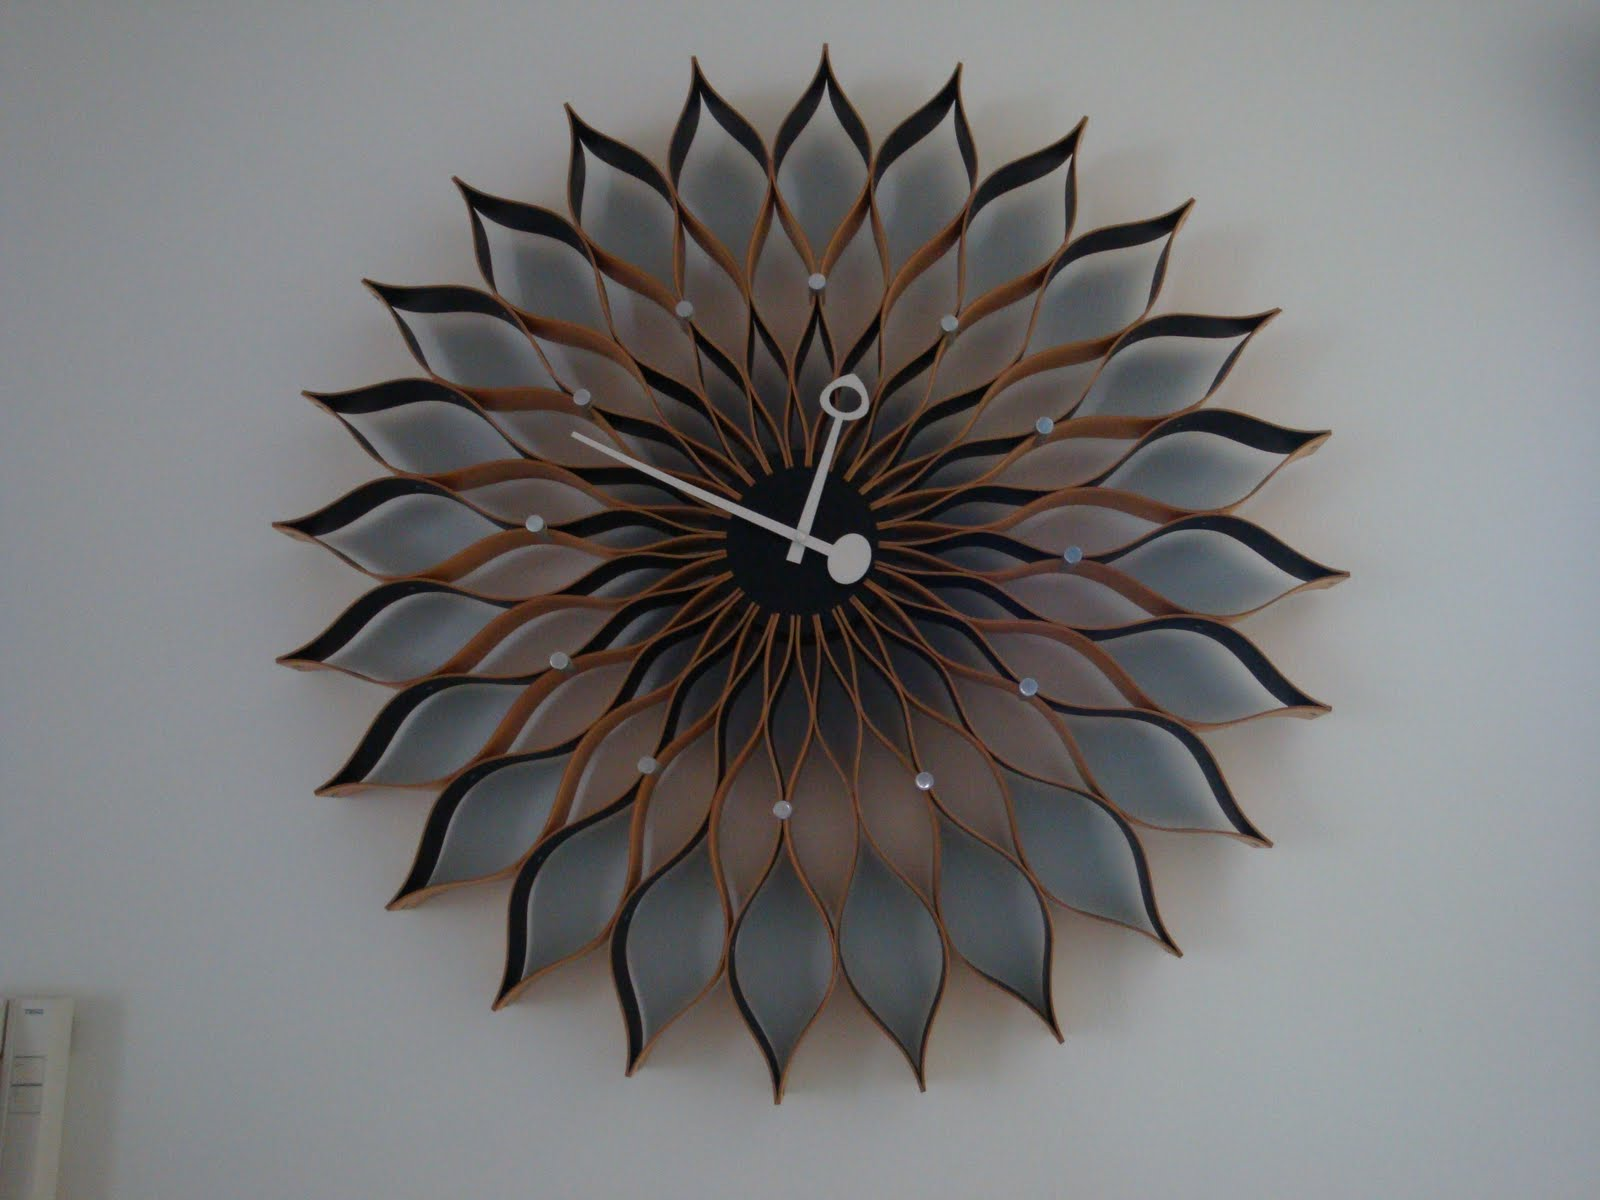 Collect Chairs George Nelson Sunflower Clock by Vitra